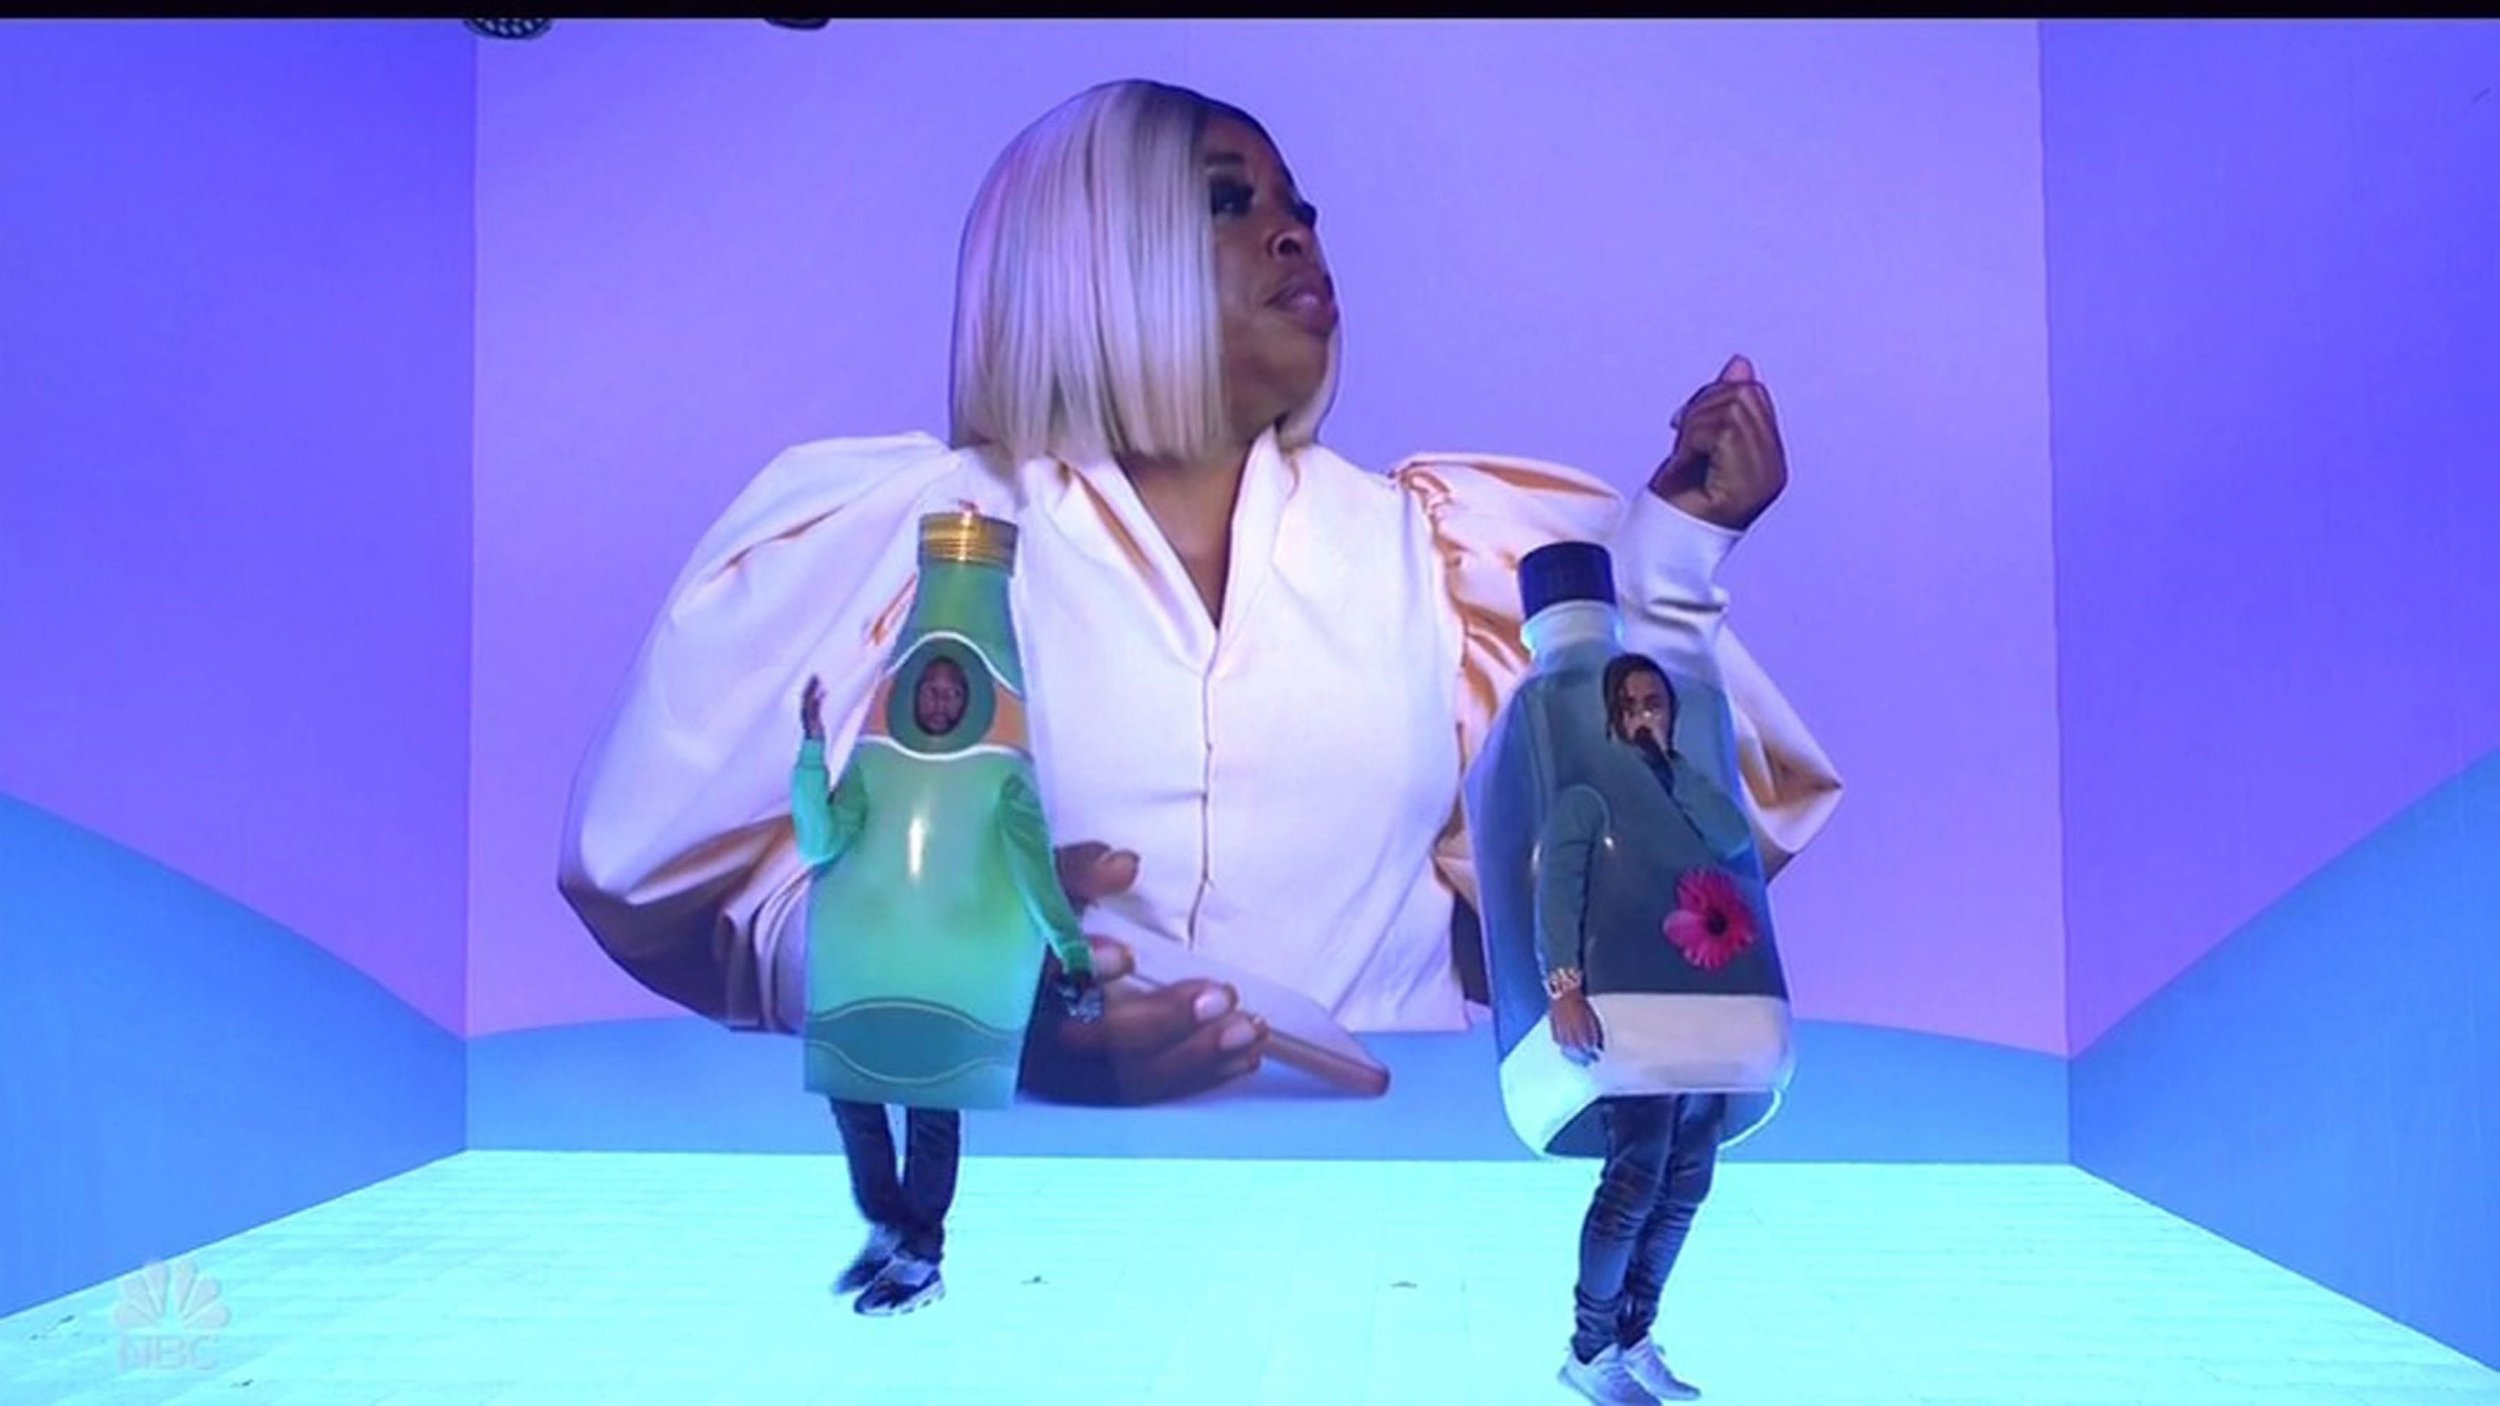 Kanye West dresses as a bottle of water and rants about politics in SNL appearance